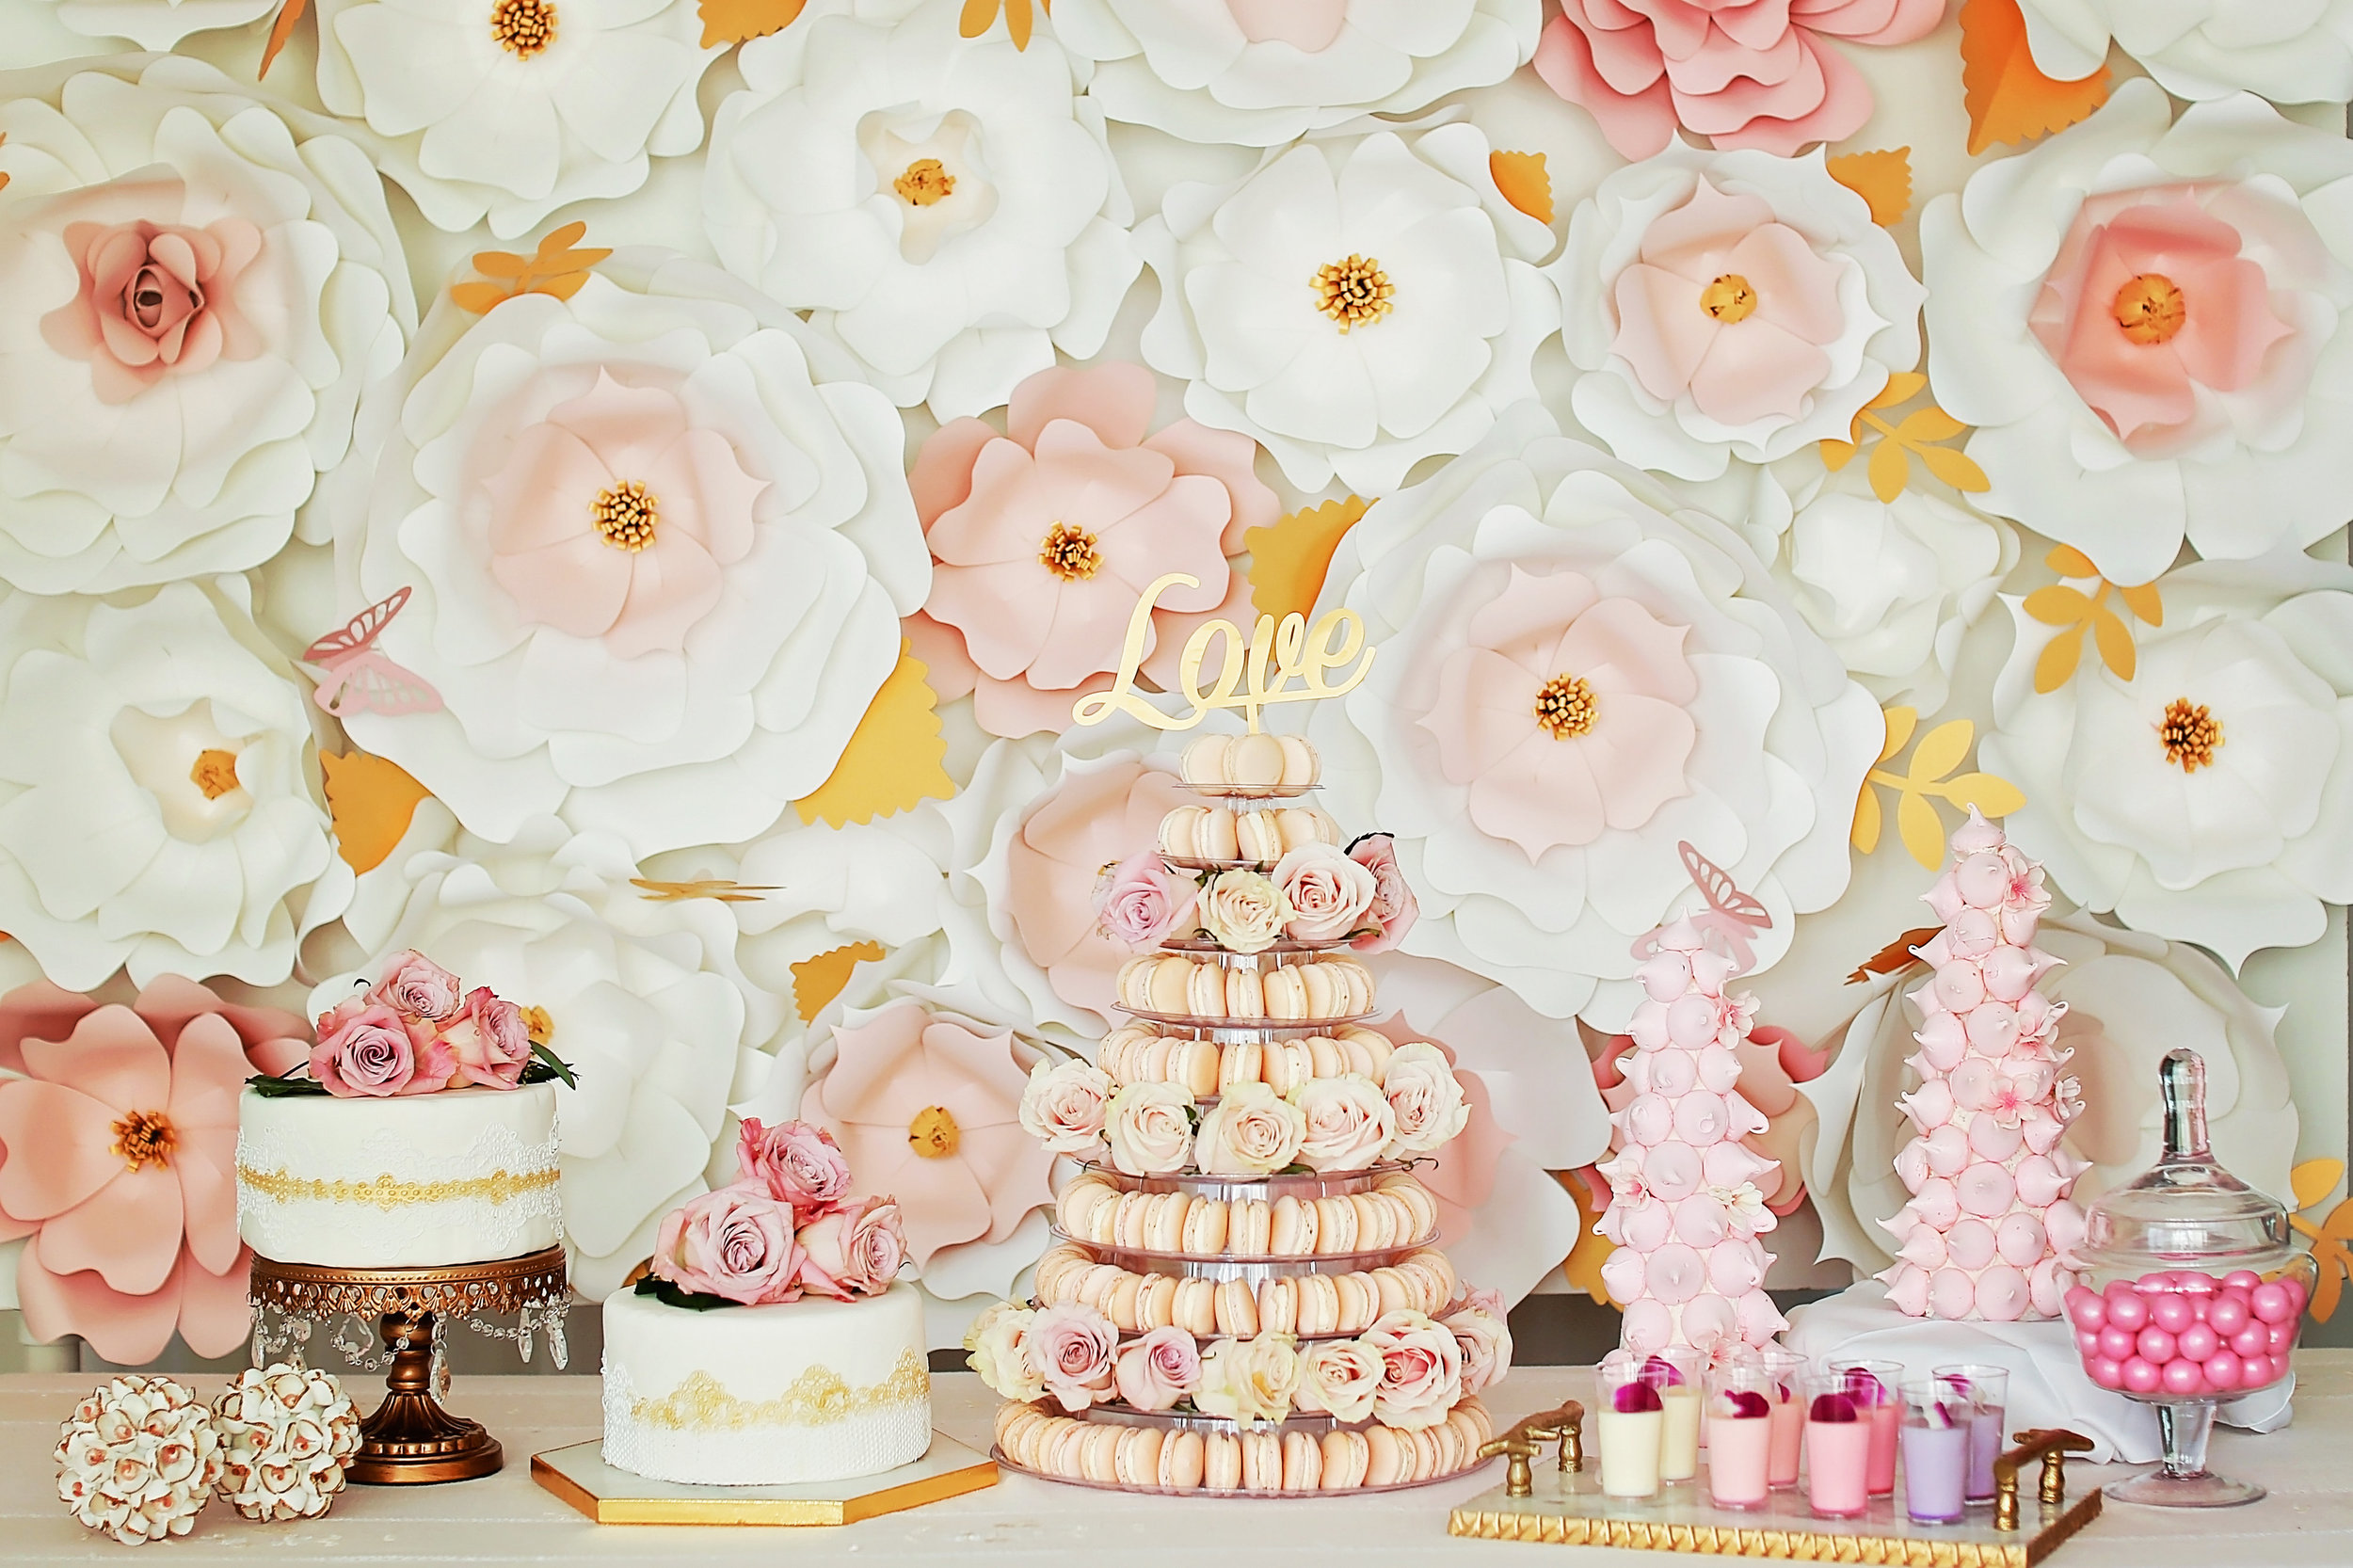 Macaron Tower - Blush wedding dessert buffet